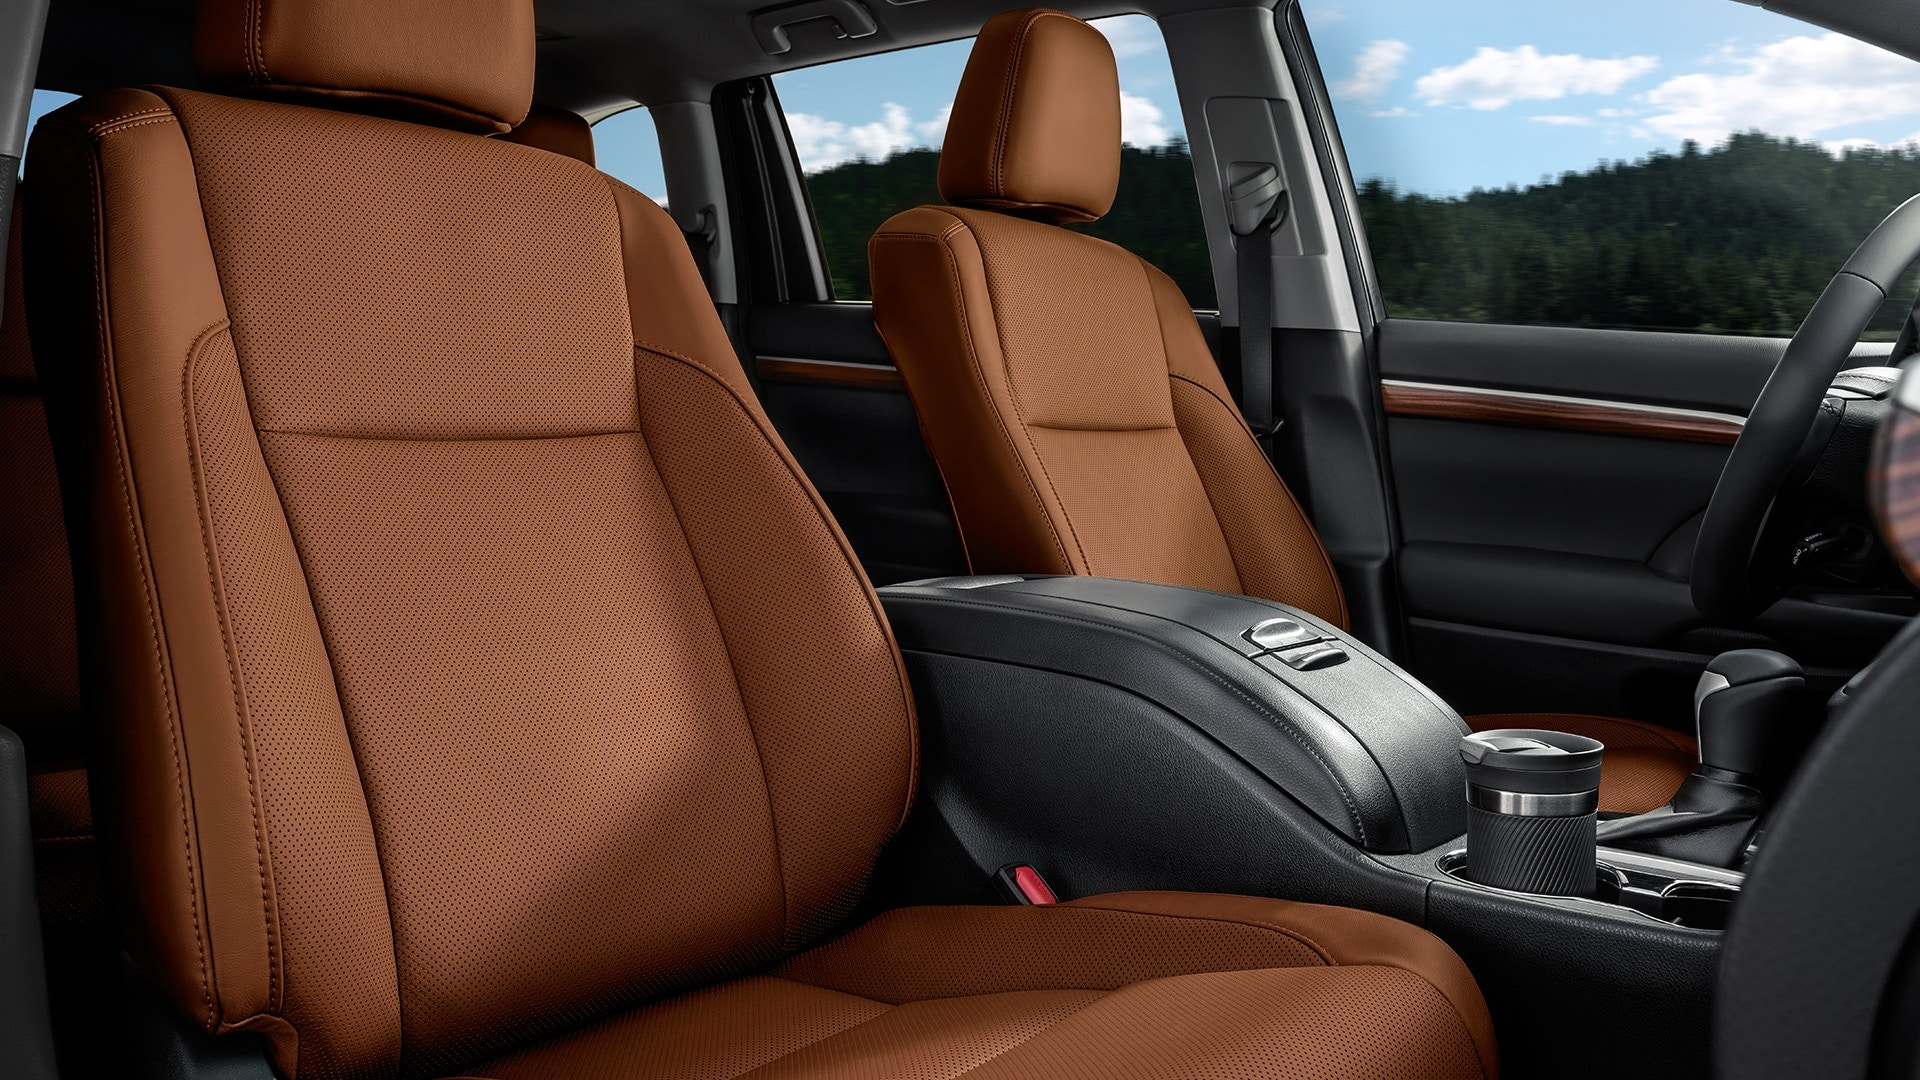 Exceptional Comfort in the Toyota Highlander